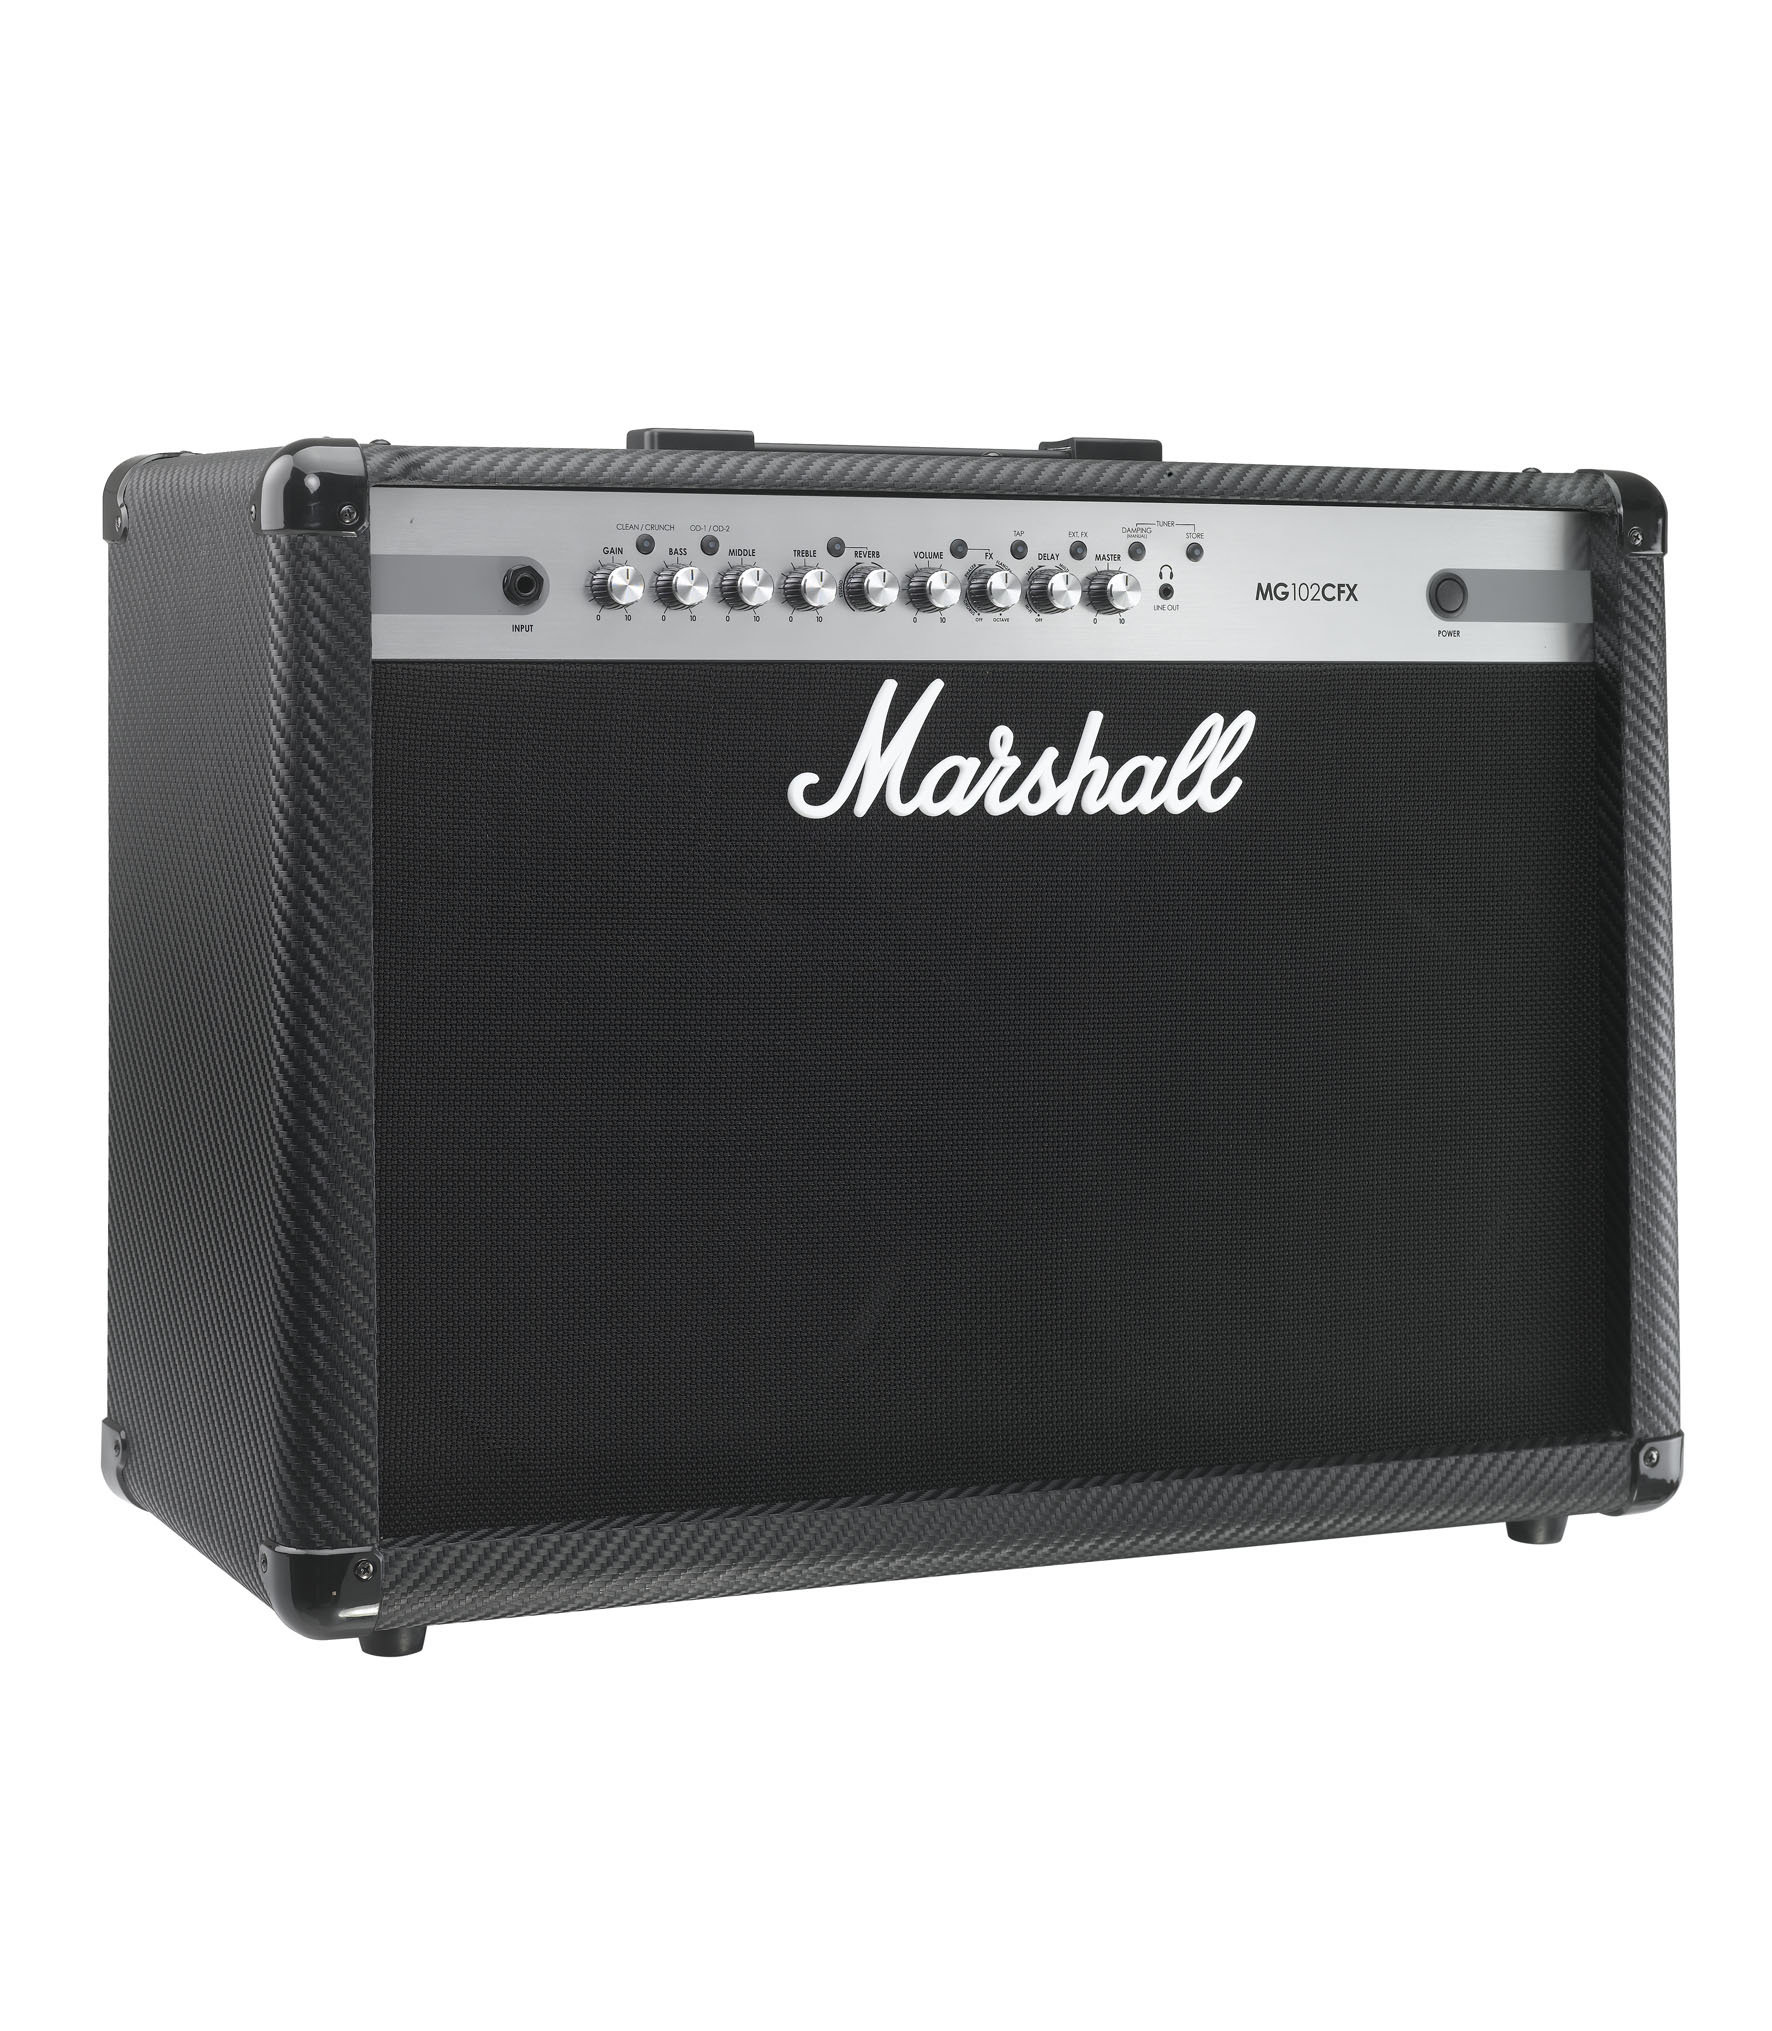 marshall - MG102CFX Solid state Guitar Amp 4 Channel - Melody House